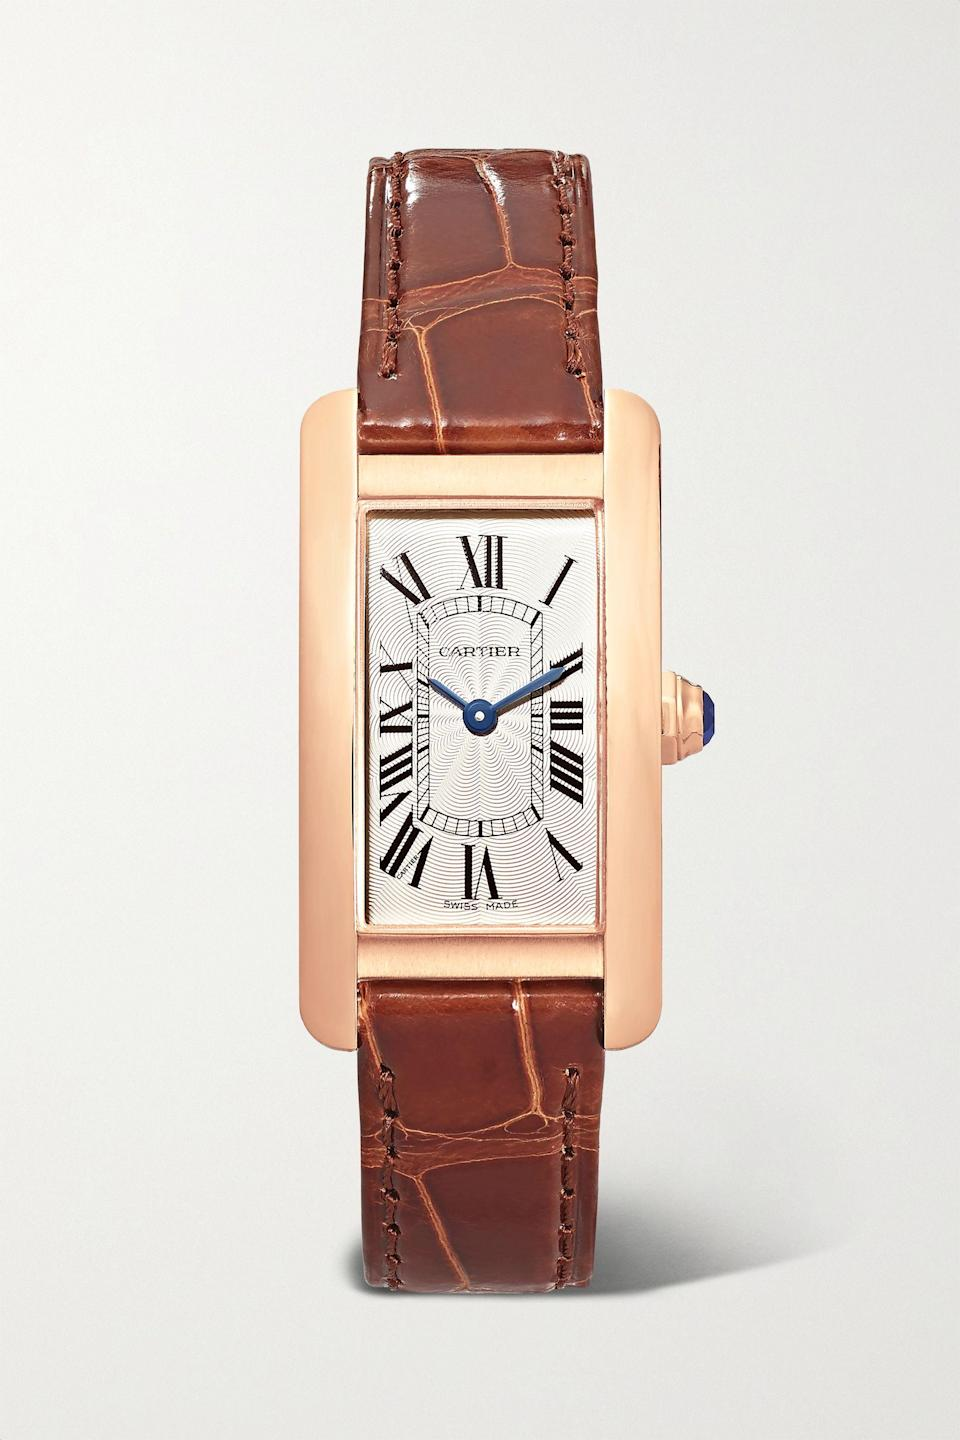 """<p><strong>Cartier</strong></p><p>net-a-porter.com</p><p><strong>$10600.00</strong></p><p><a href=""""https://go.redirectingat.com?id=74968X1596630&url=https%3A%2F%2Fwww.net-a-porter.com%2Fen-us%2Fshop%2Fproduct%2Fcartier%2Fjewelry-and-watches%2Fwatches%2Ftank-americaine-348mm-small-18-karat-rose-gold-and-alligator-watch%2F19971654707114679&sref=https%3A%2F%2Fwww.harpersbazaar.com%2Ffashion%2Ftrends%2Fg24061584%2Fbest-gifts-for-friends-ideas%2F"""" rel=""""nofollow noopener"""" target=""""_blank"""" data-ylk=""""slk:Shop Now"""" class=""""link rapid-noclick-resp"""">Shop Now</a></p><p>Time for a celebration? Do it properly.</p>"""